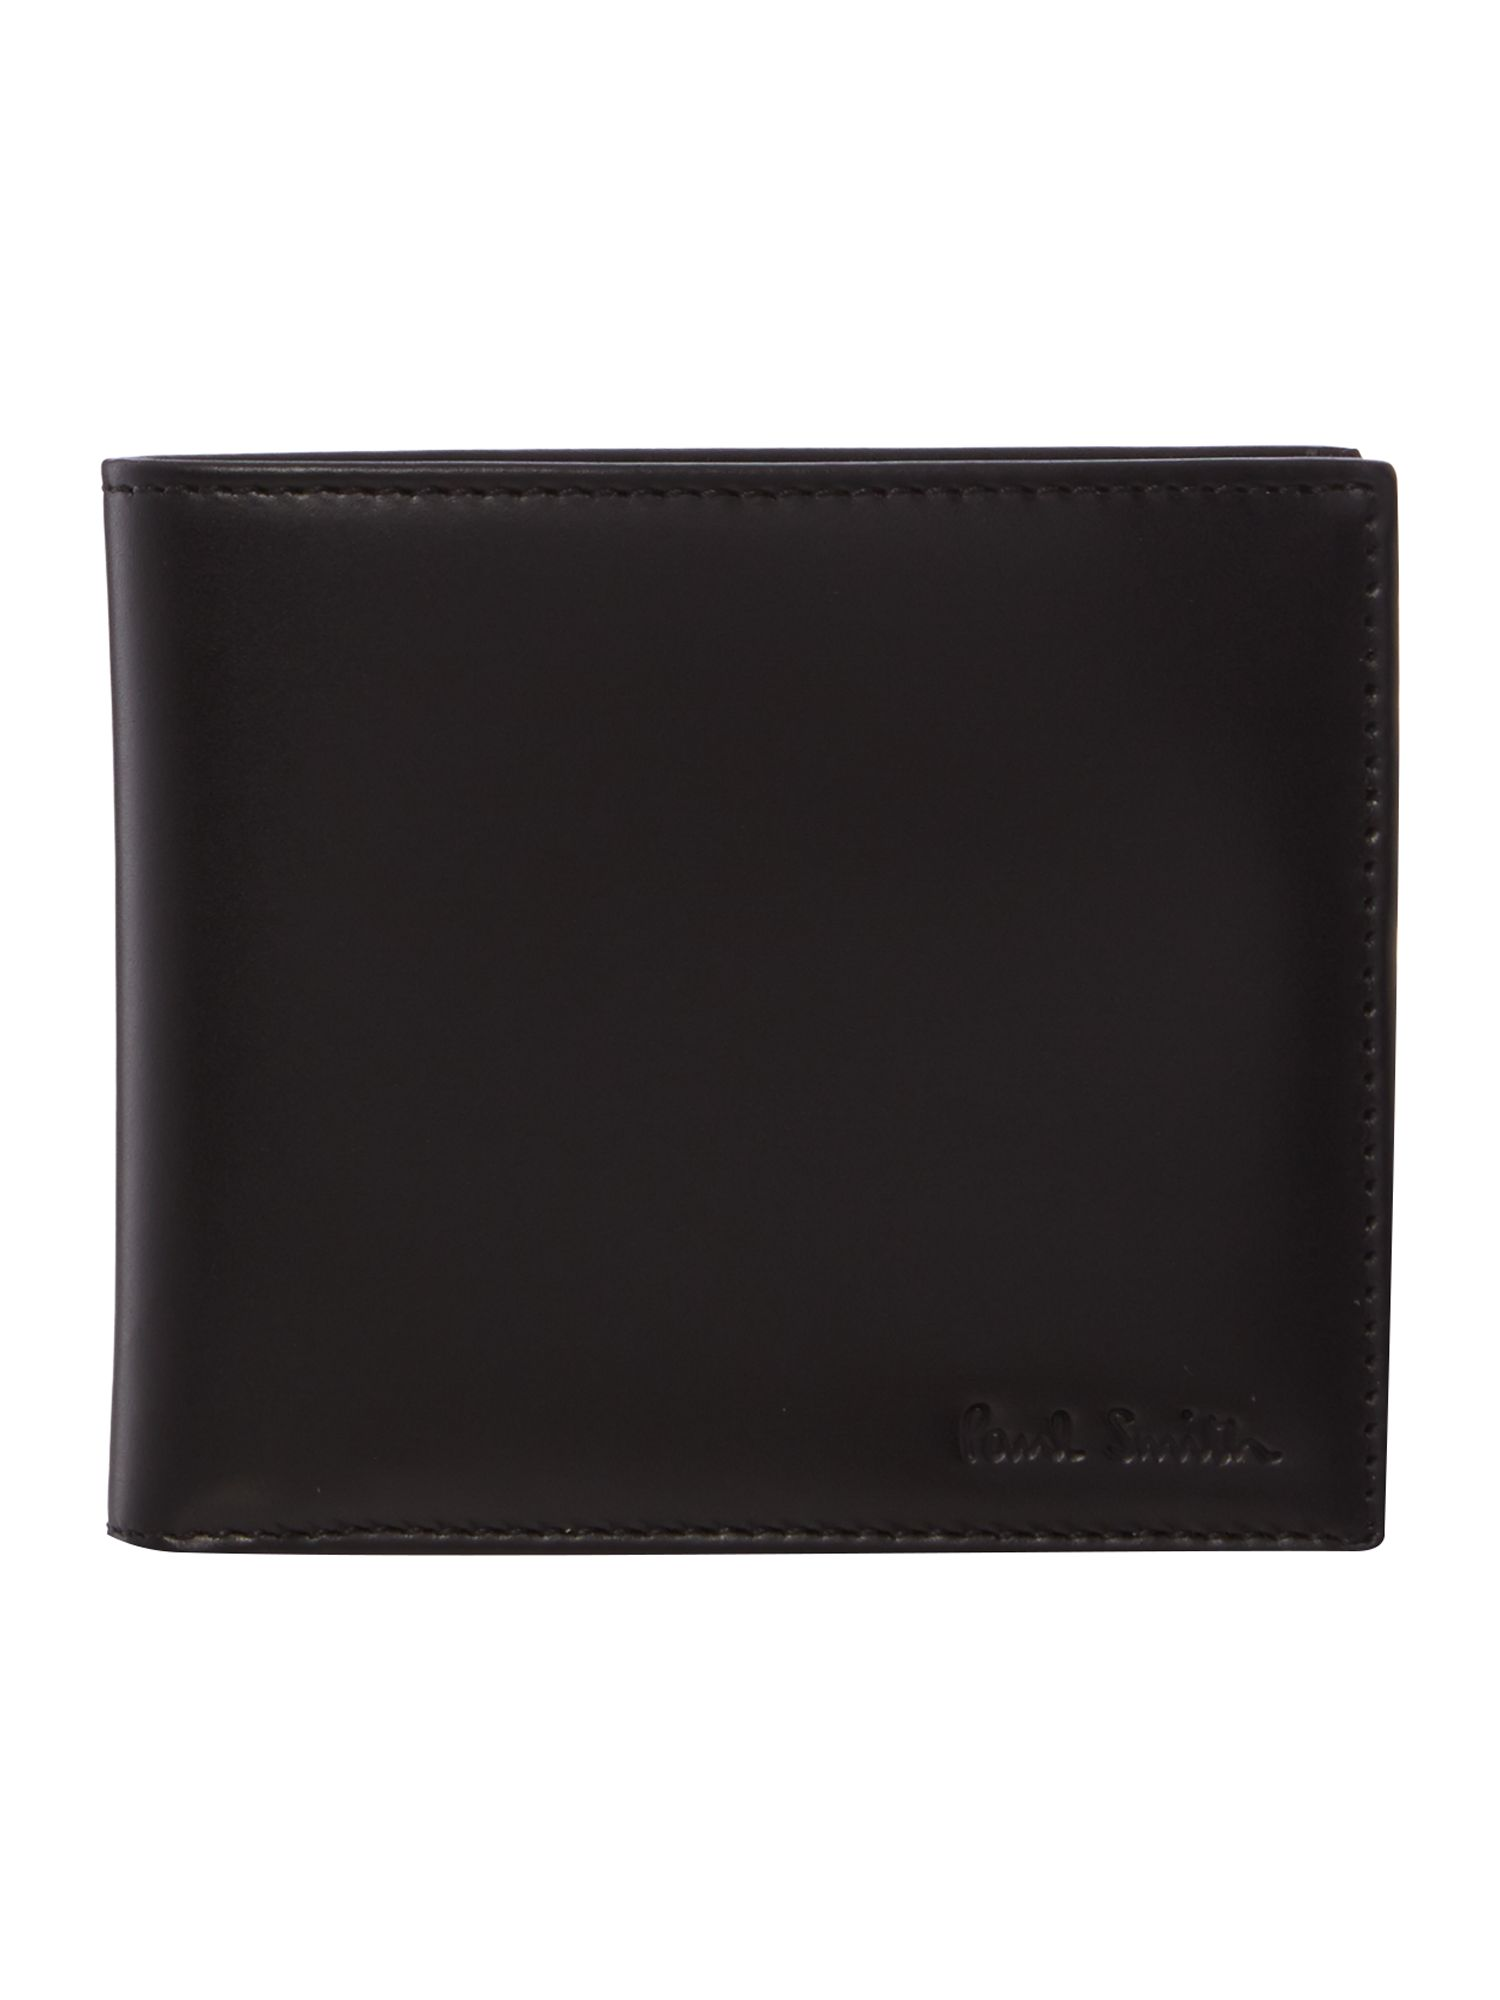 Internal multistripe billfold wallet